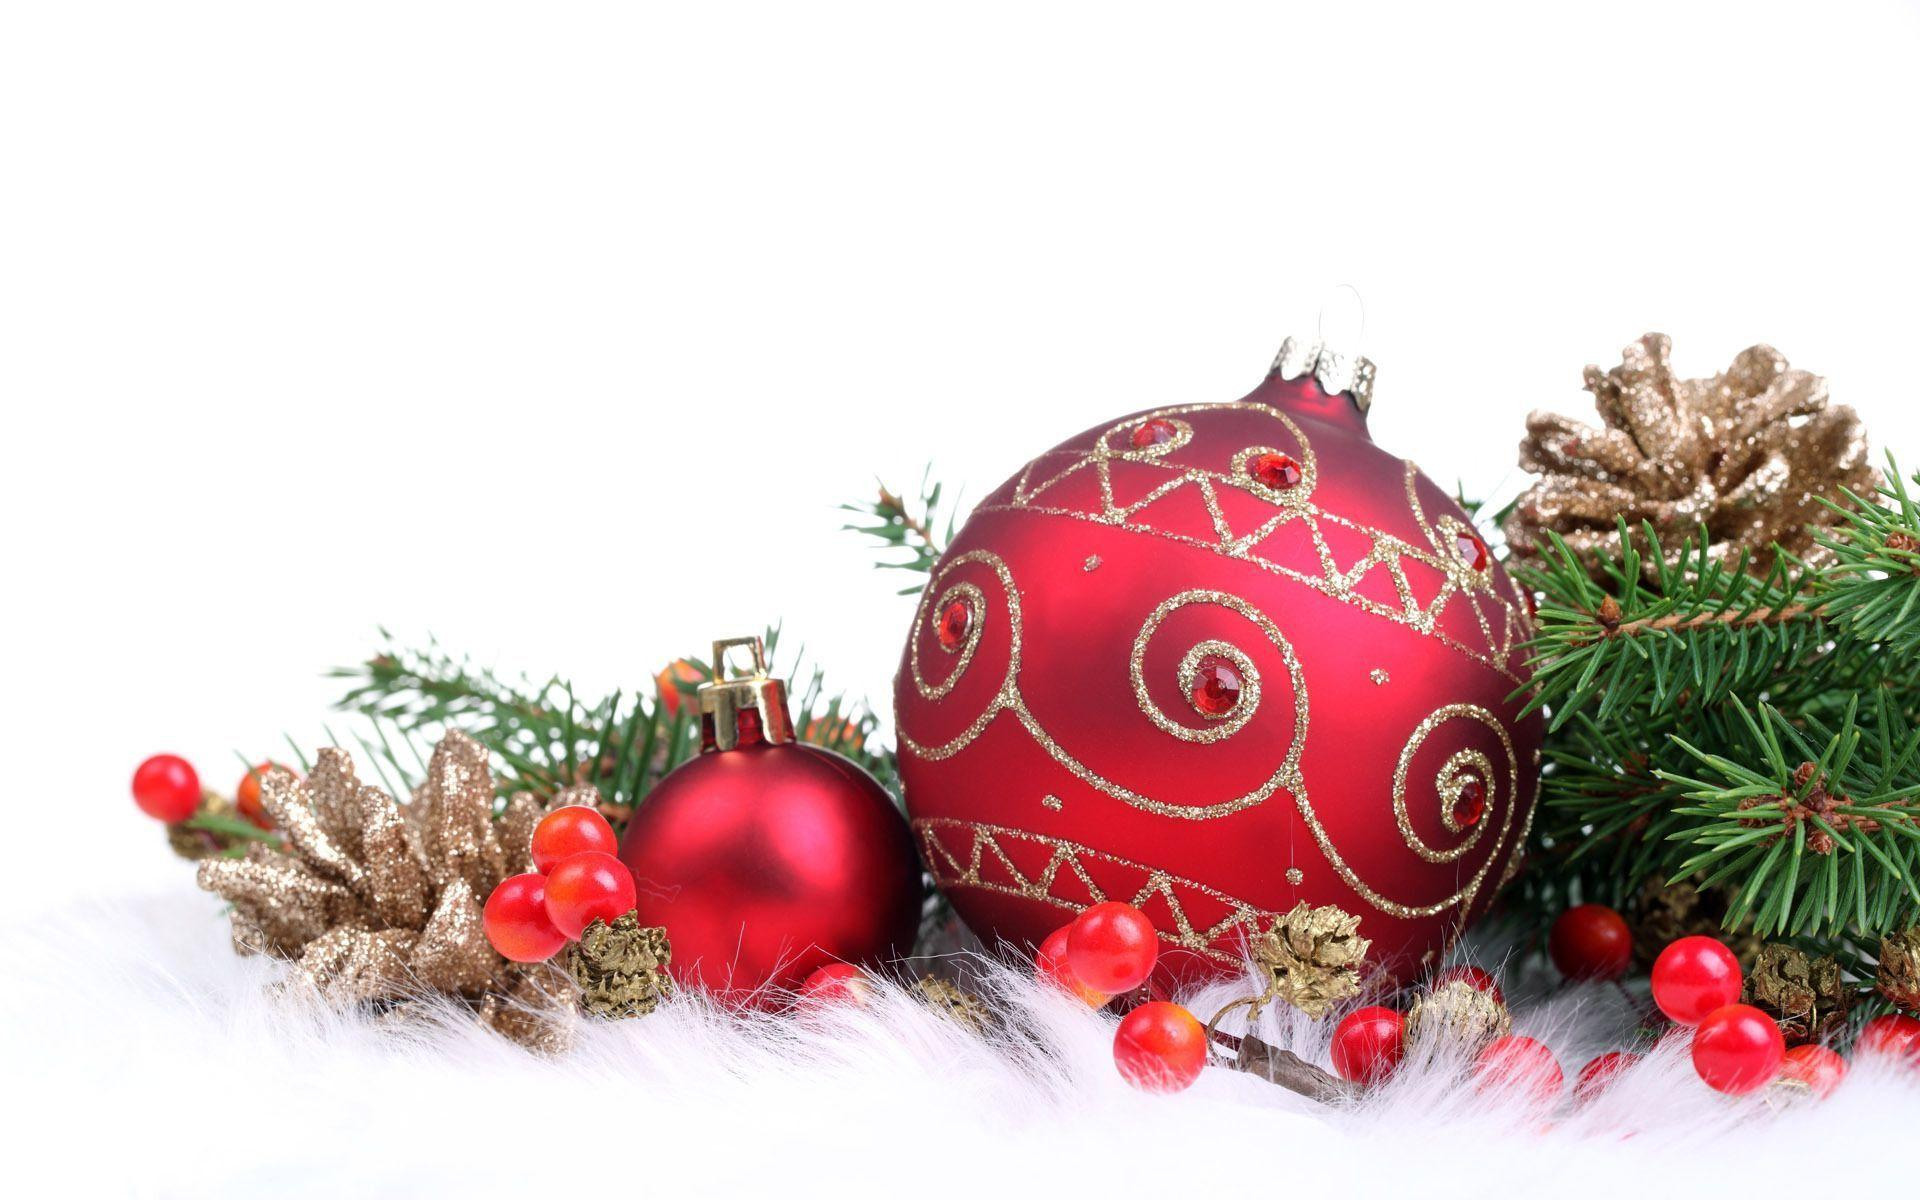 Christmas Decorations Wallpapers Wallpapers Cave Red Fanpop ~ idolza